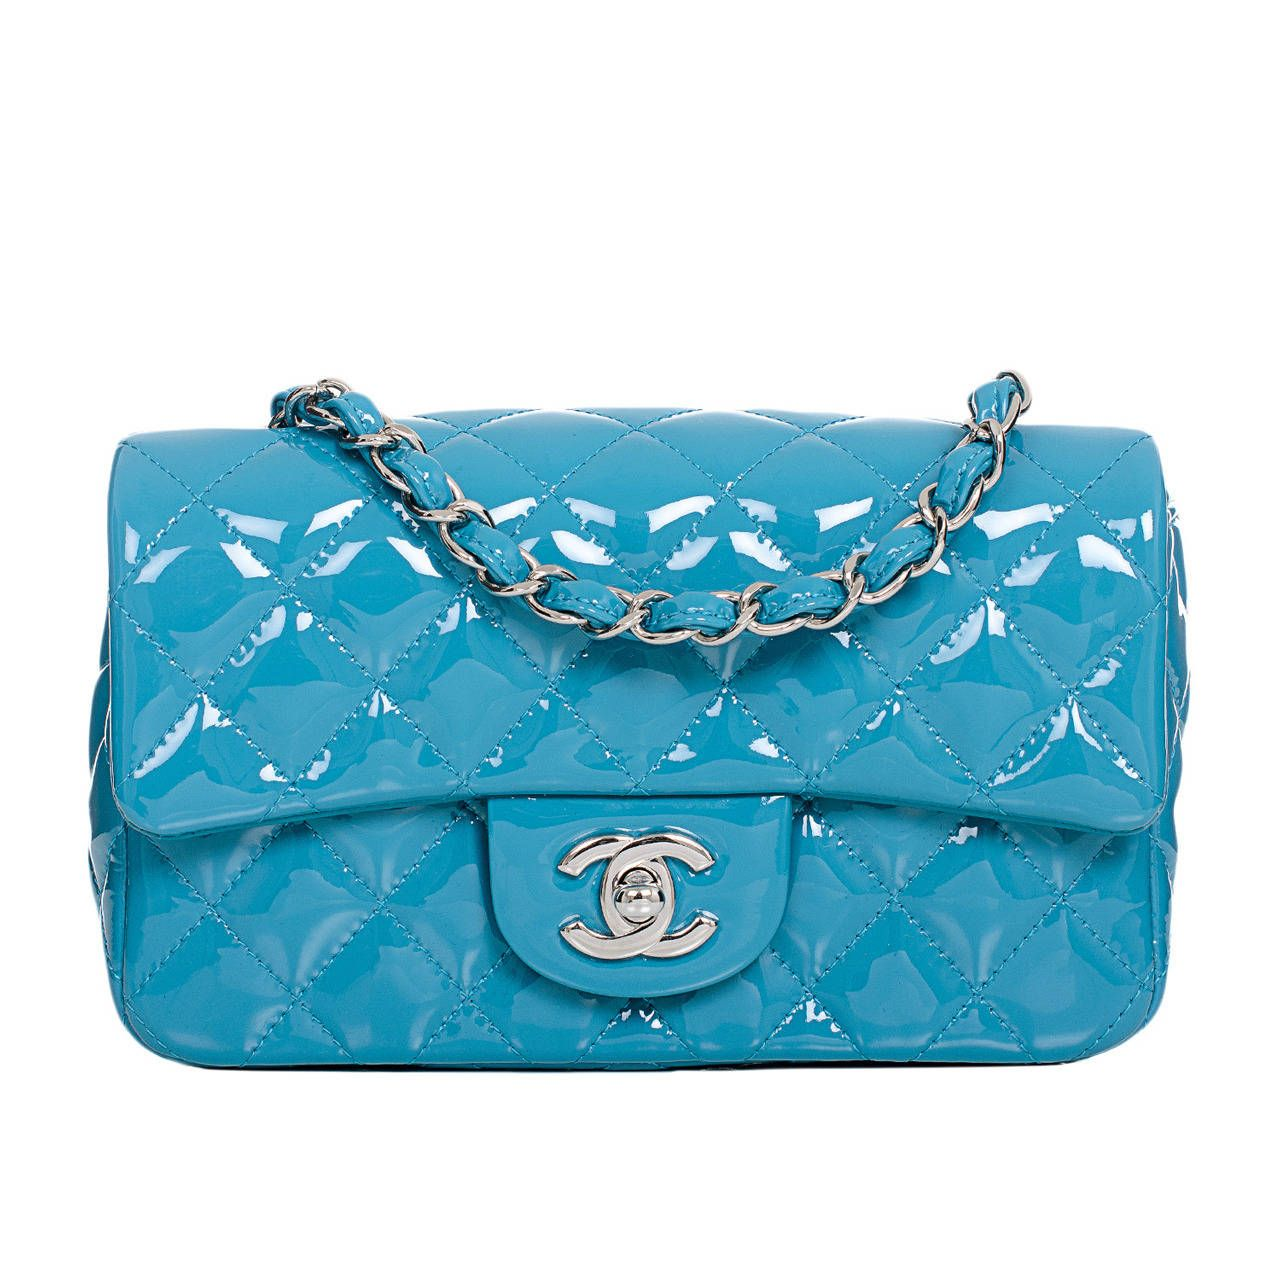 4f8920c6e7f7 Chanel Turquoise Quilted Patent Small Classic 2.55 Flap Bag